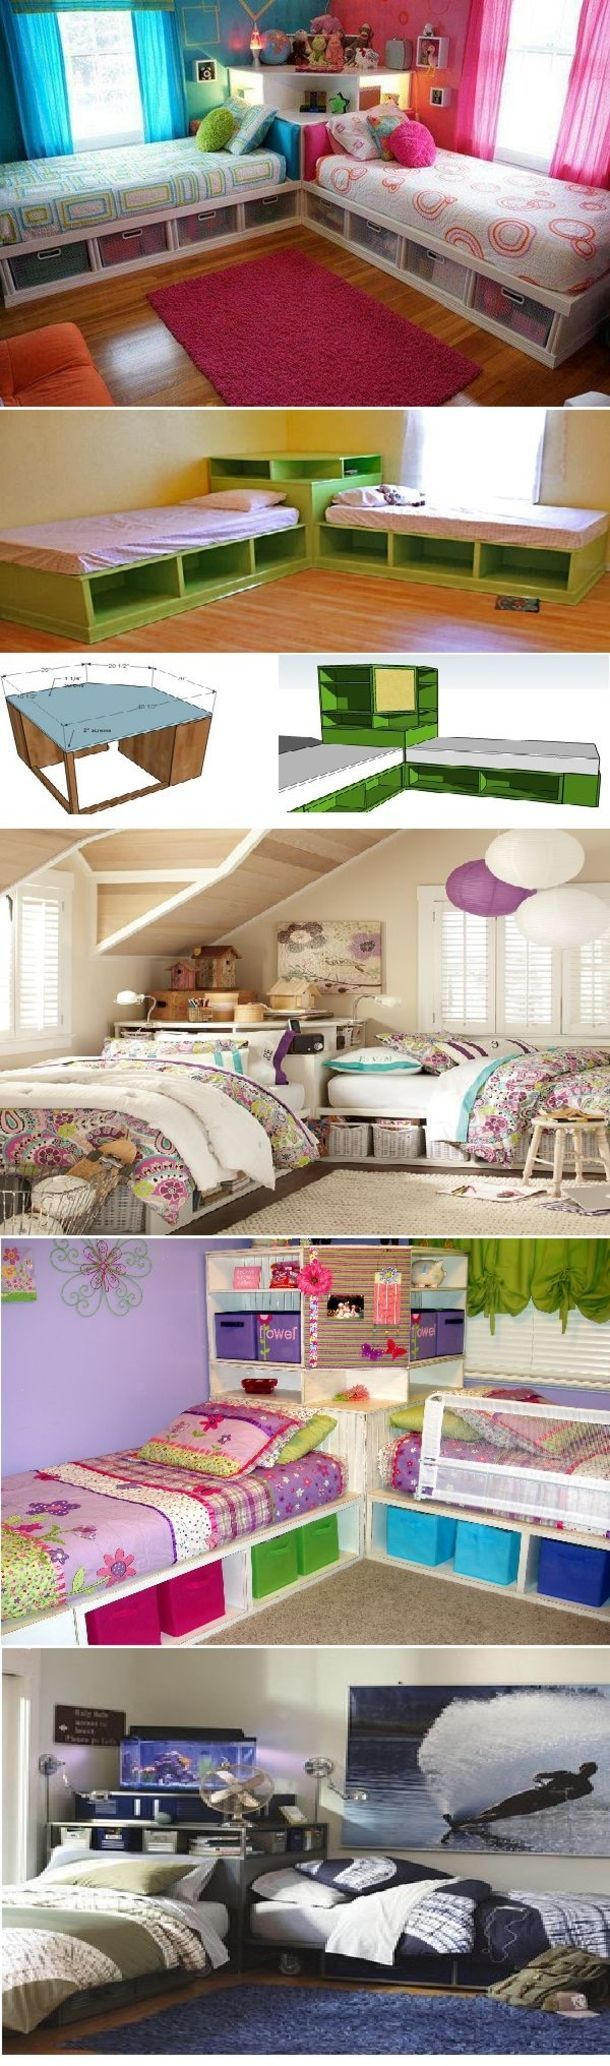 Ideas For Kids Rooms 1039 Best Kid Bedrooms Images On Pinterest  Room Architecture